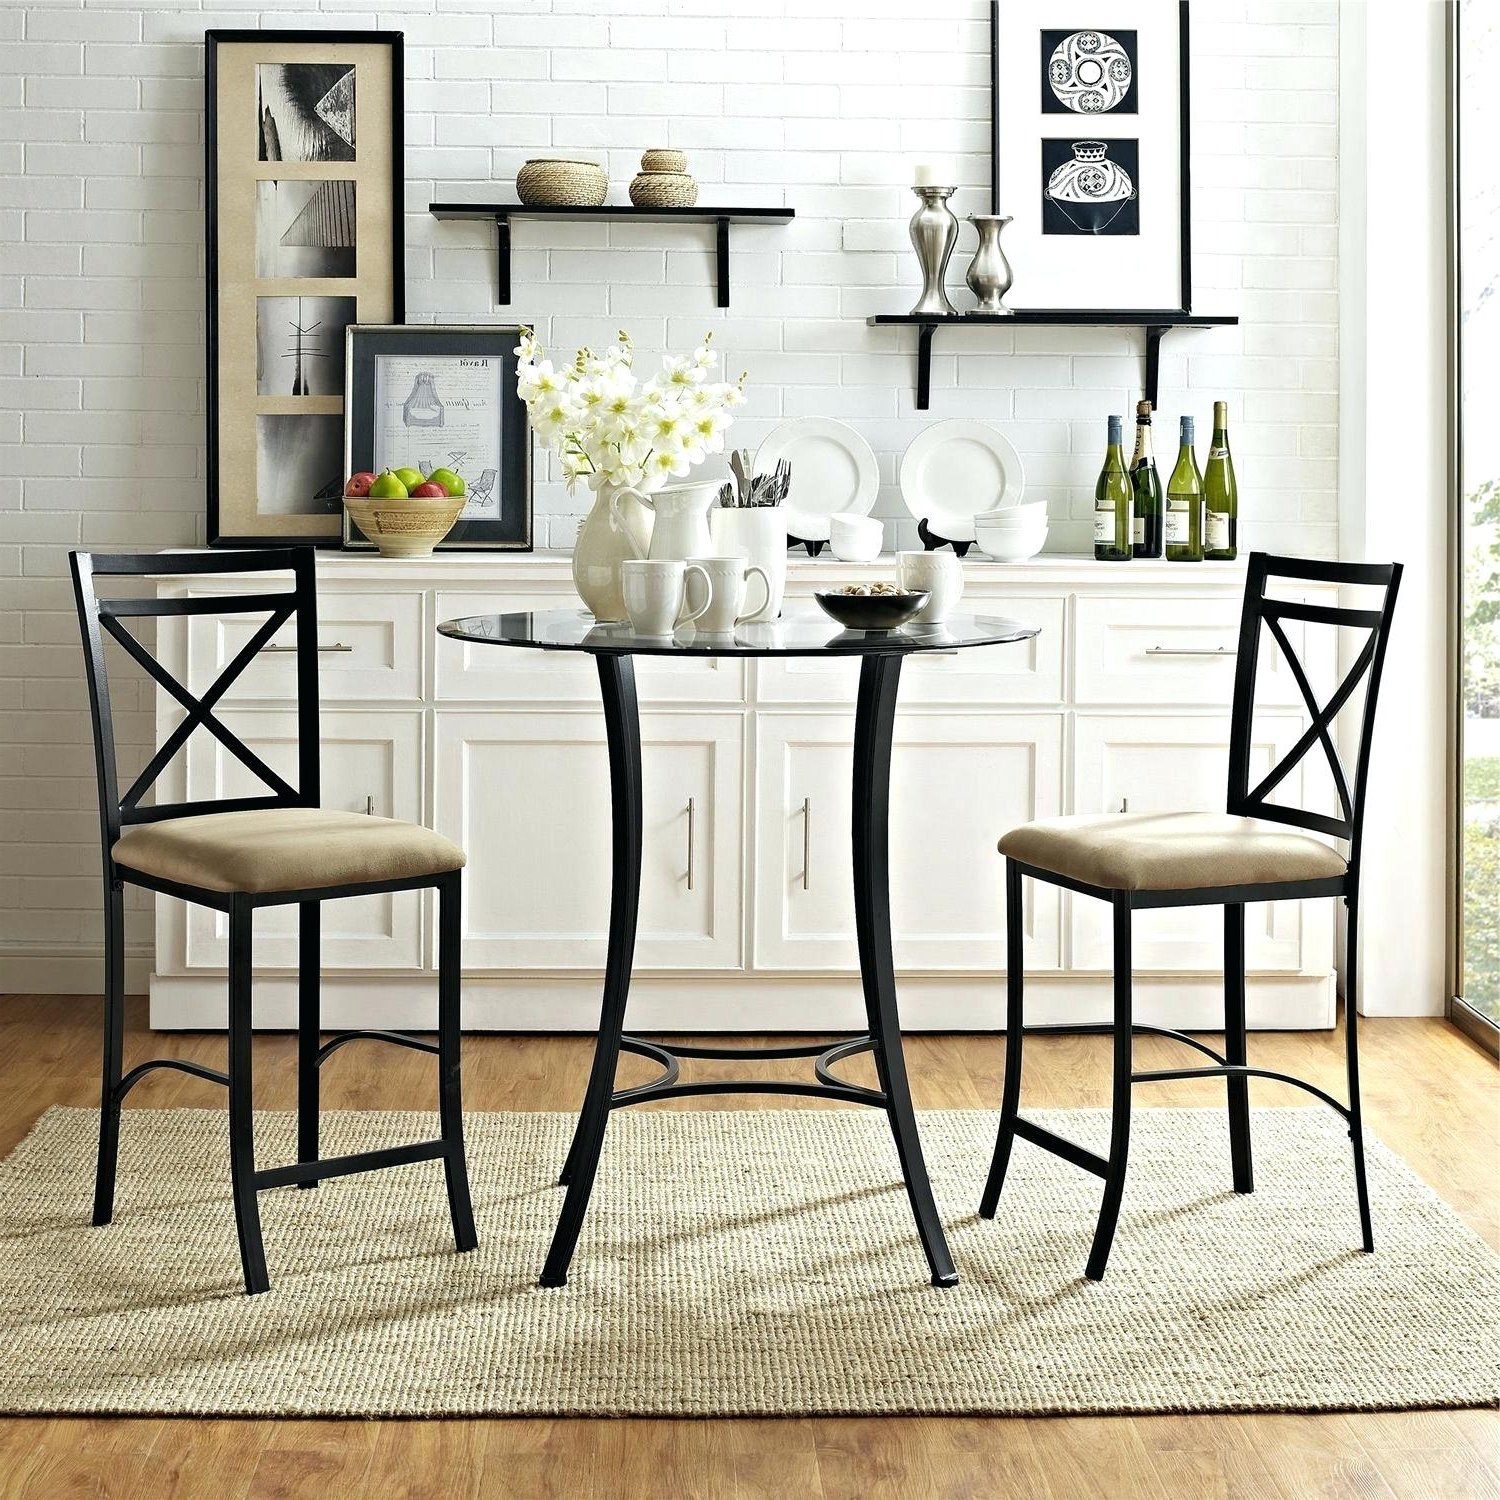 Denzel 5 Piece Counter Height Breakfast Nook Dining Sets throughout Fashionable Counter Height Breakfast Nook S Dining Set – Dortmundfcstore